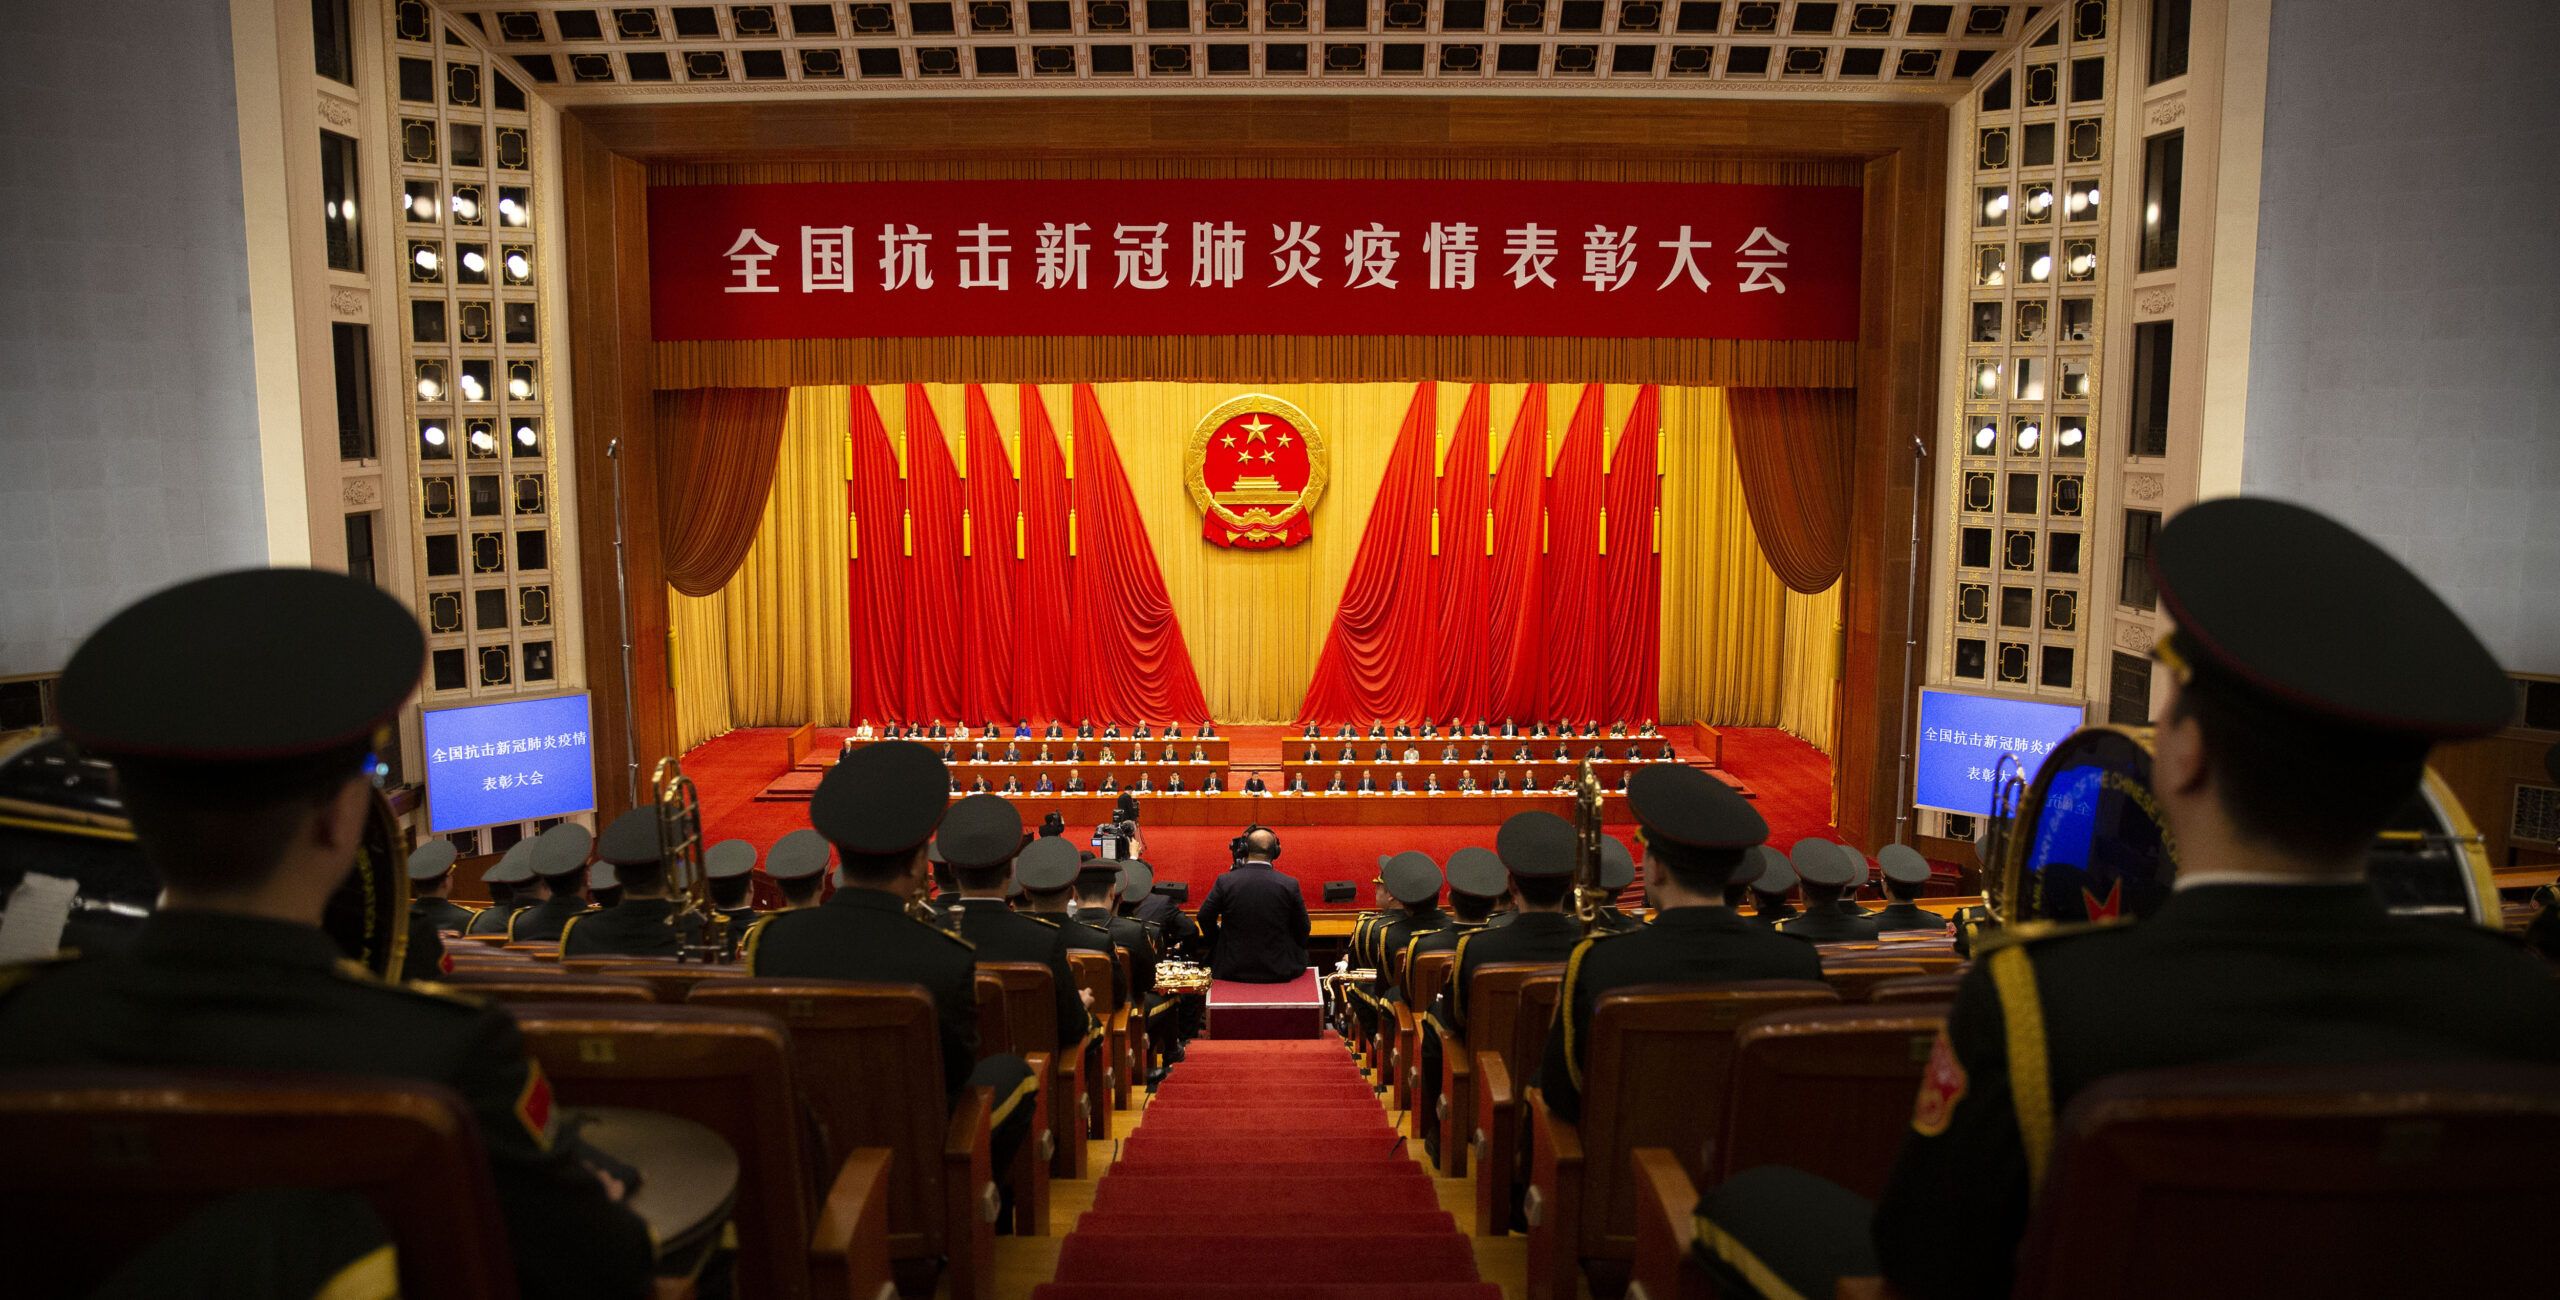 Members of Chinese military band watch an event to honor some of those involved in China's fight against COVID-19 at the Great Hall of the People in Beijing, Tuesday, Sept. 8, 2020. Chinese leader Xi Jinping is praising China's role in battling the global coronavirus pandemic and expressing support for the U.N.'s World Health Organization, in a repudiation of U.S. criticism and a bid to rally domestic support for Communist Party leadership. (AP Photo/Mark Schiefelbein)